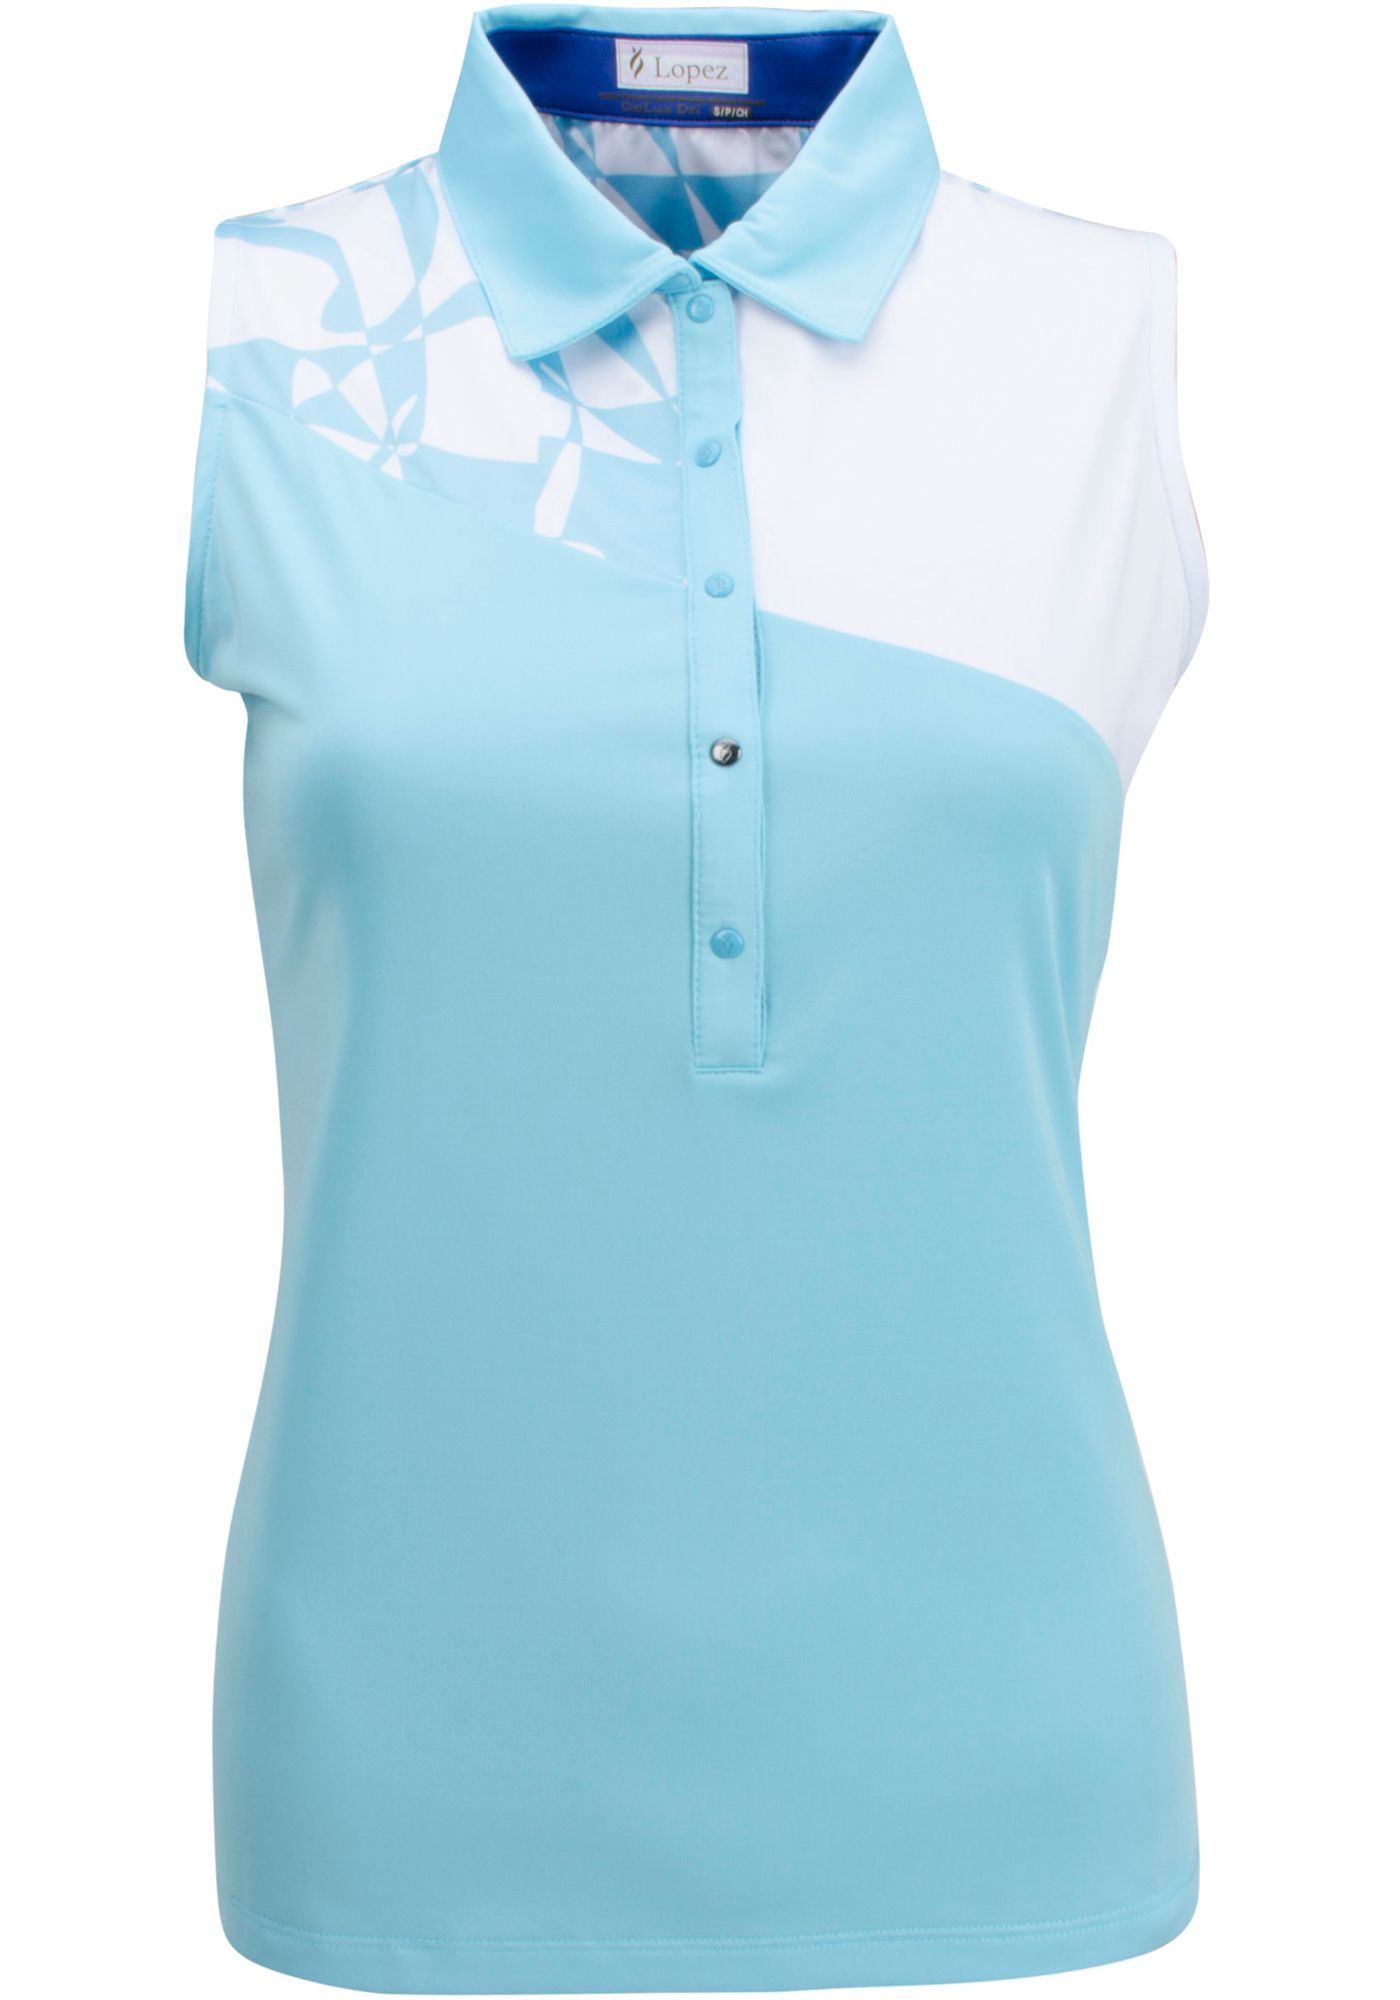 Nancy Lopez Women's Splice Sleeveless Golf Polo - Extended Sizes